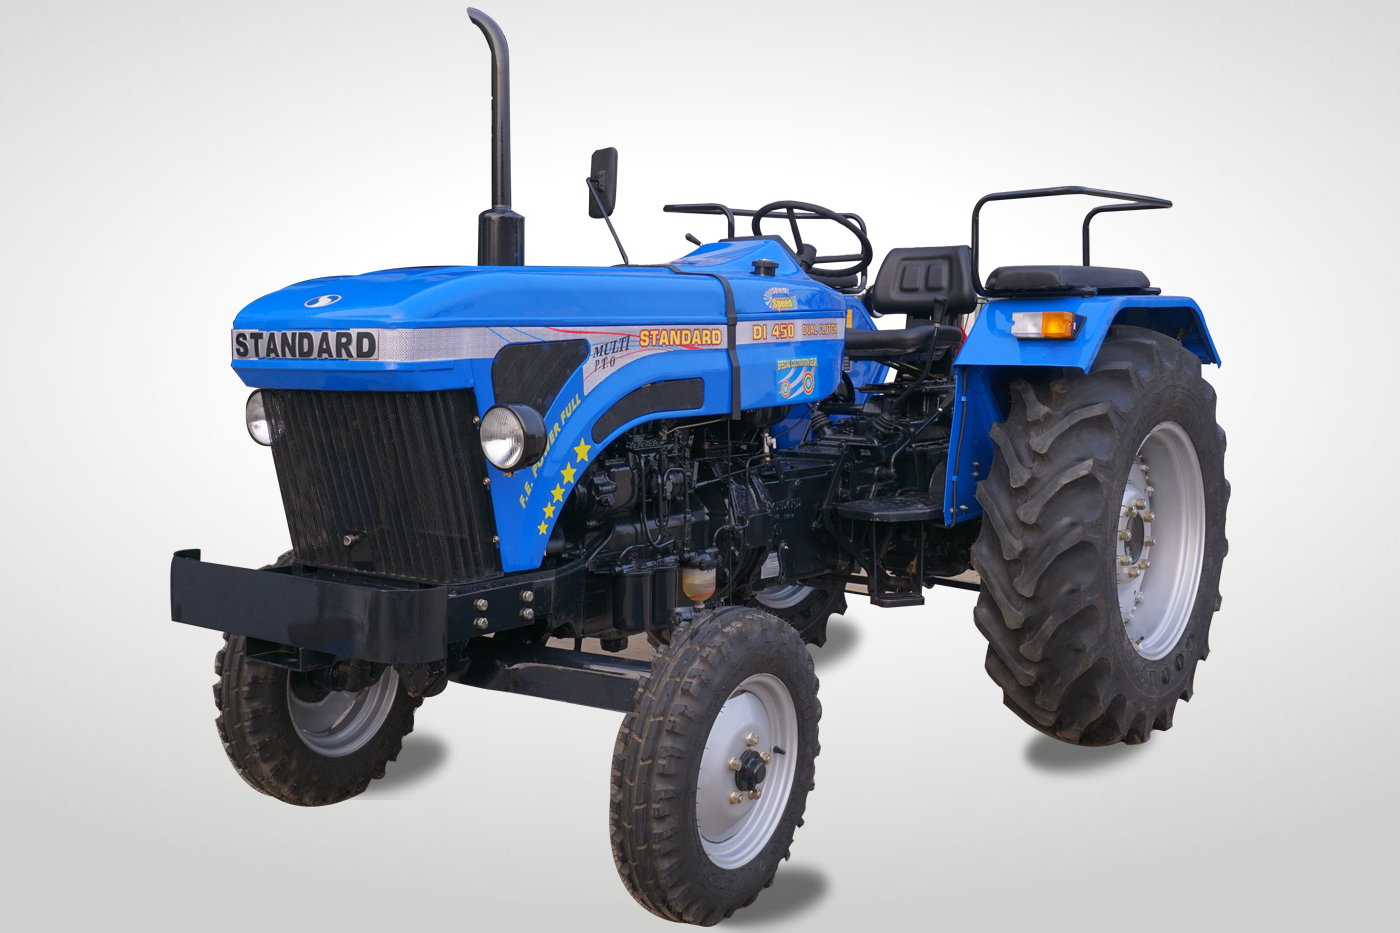 https://images.tractorgyan.com/uploads/384/Standard-DI-450-tractorgyan.png